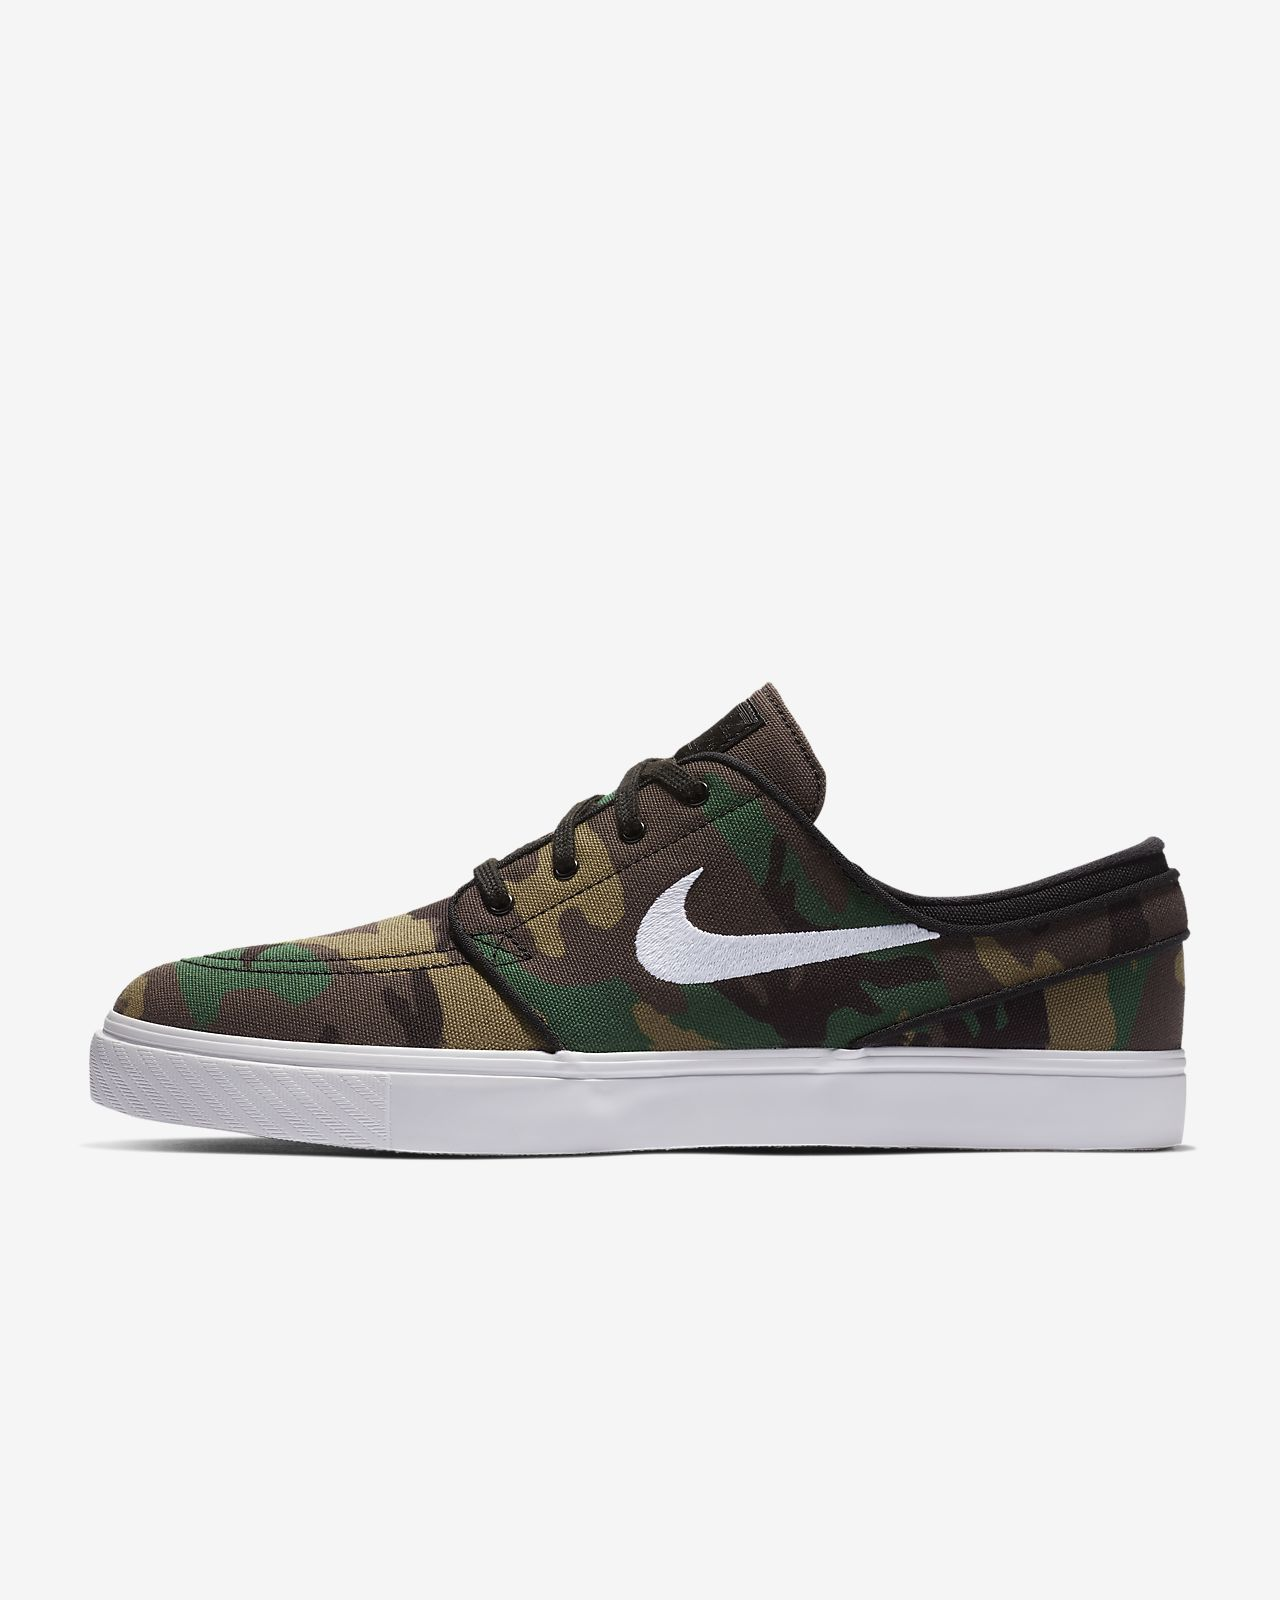 91ad75408d56 Nike SB Zoom Stefan Janoski Canvas Men s Skate Shoe. Nike.com GB